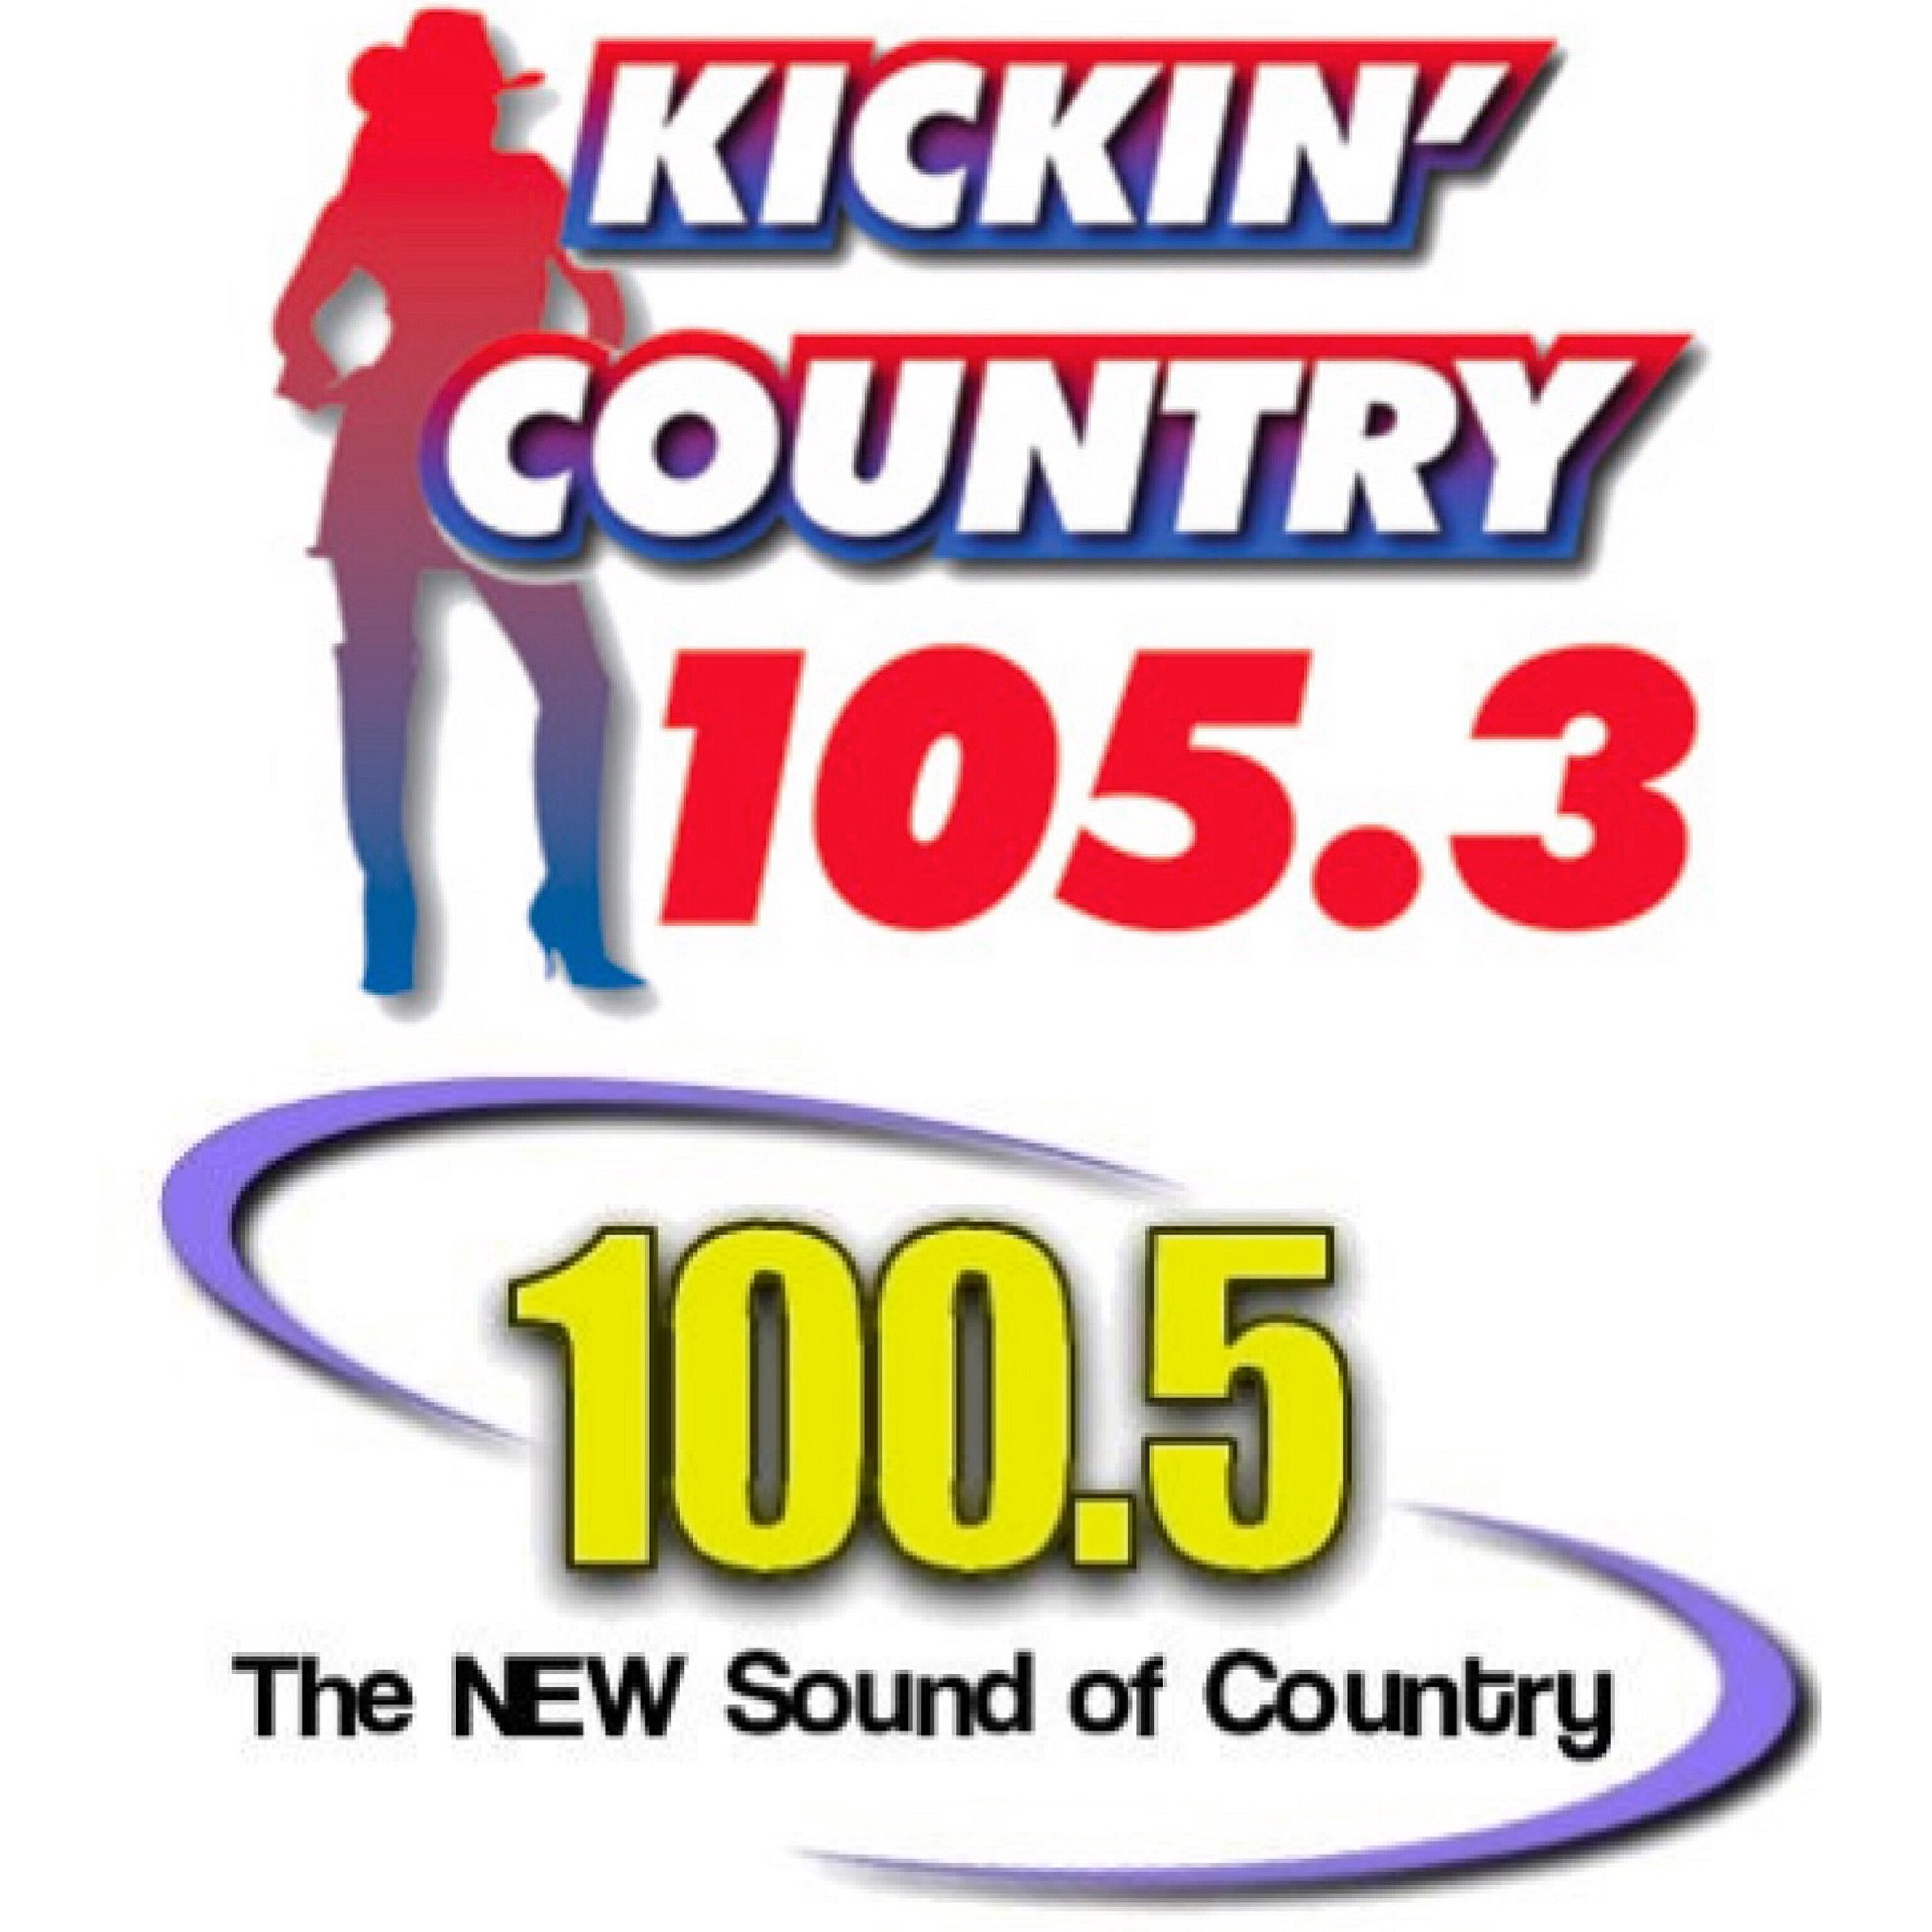 Radio Interview - Kickin' Country 105.3 and 100.5 The New Sound of Country - Chatting with Stephanie Owens